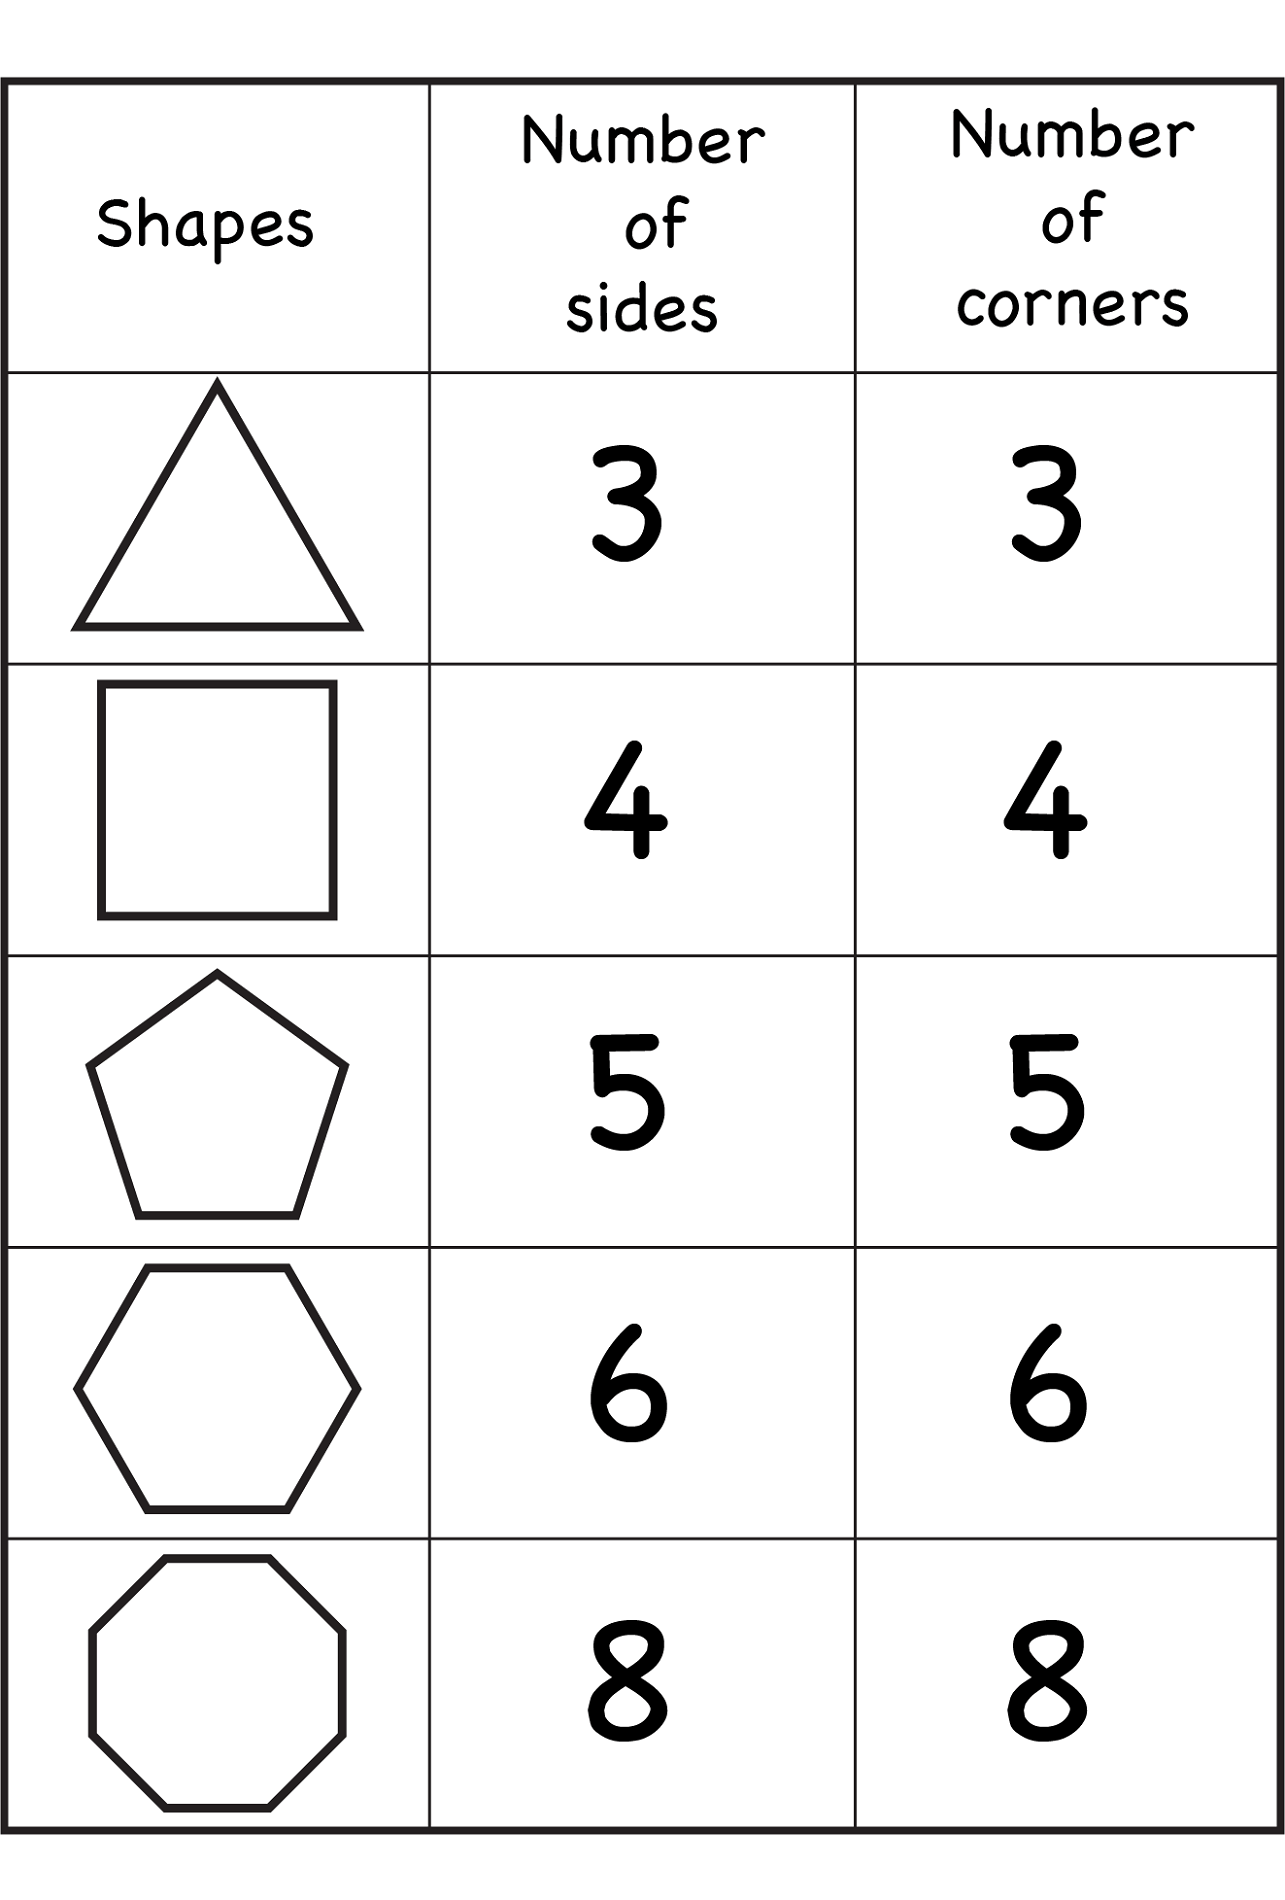 Shapes Worksheet For Lkg